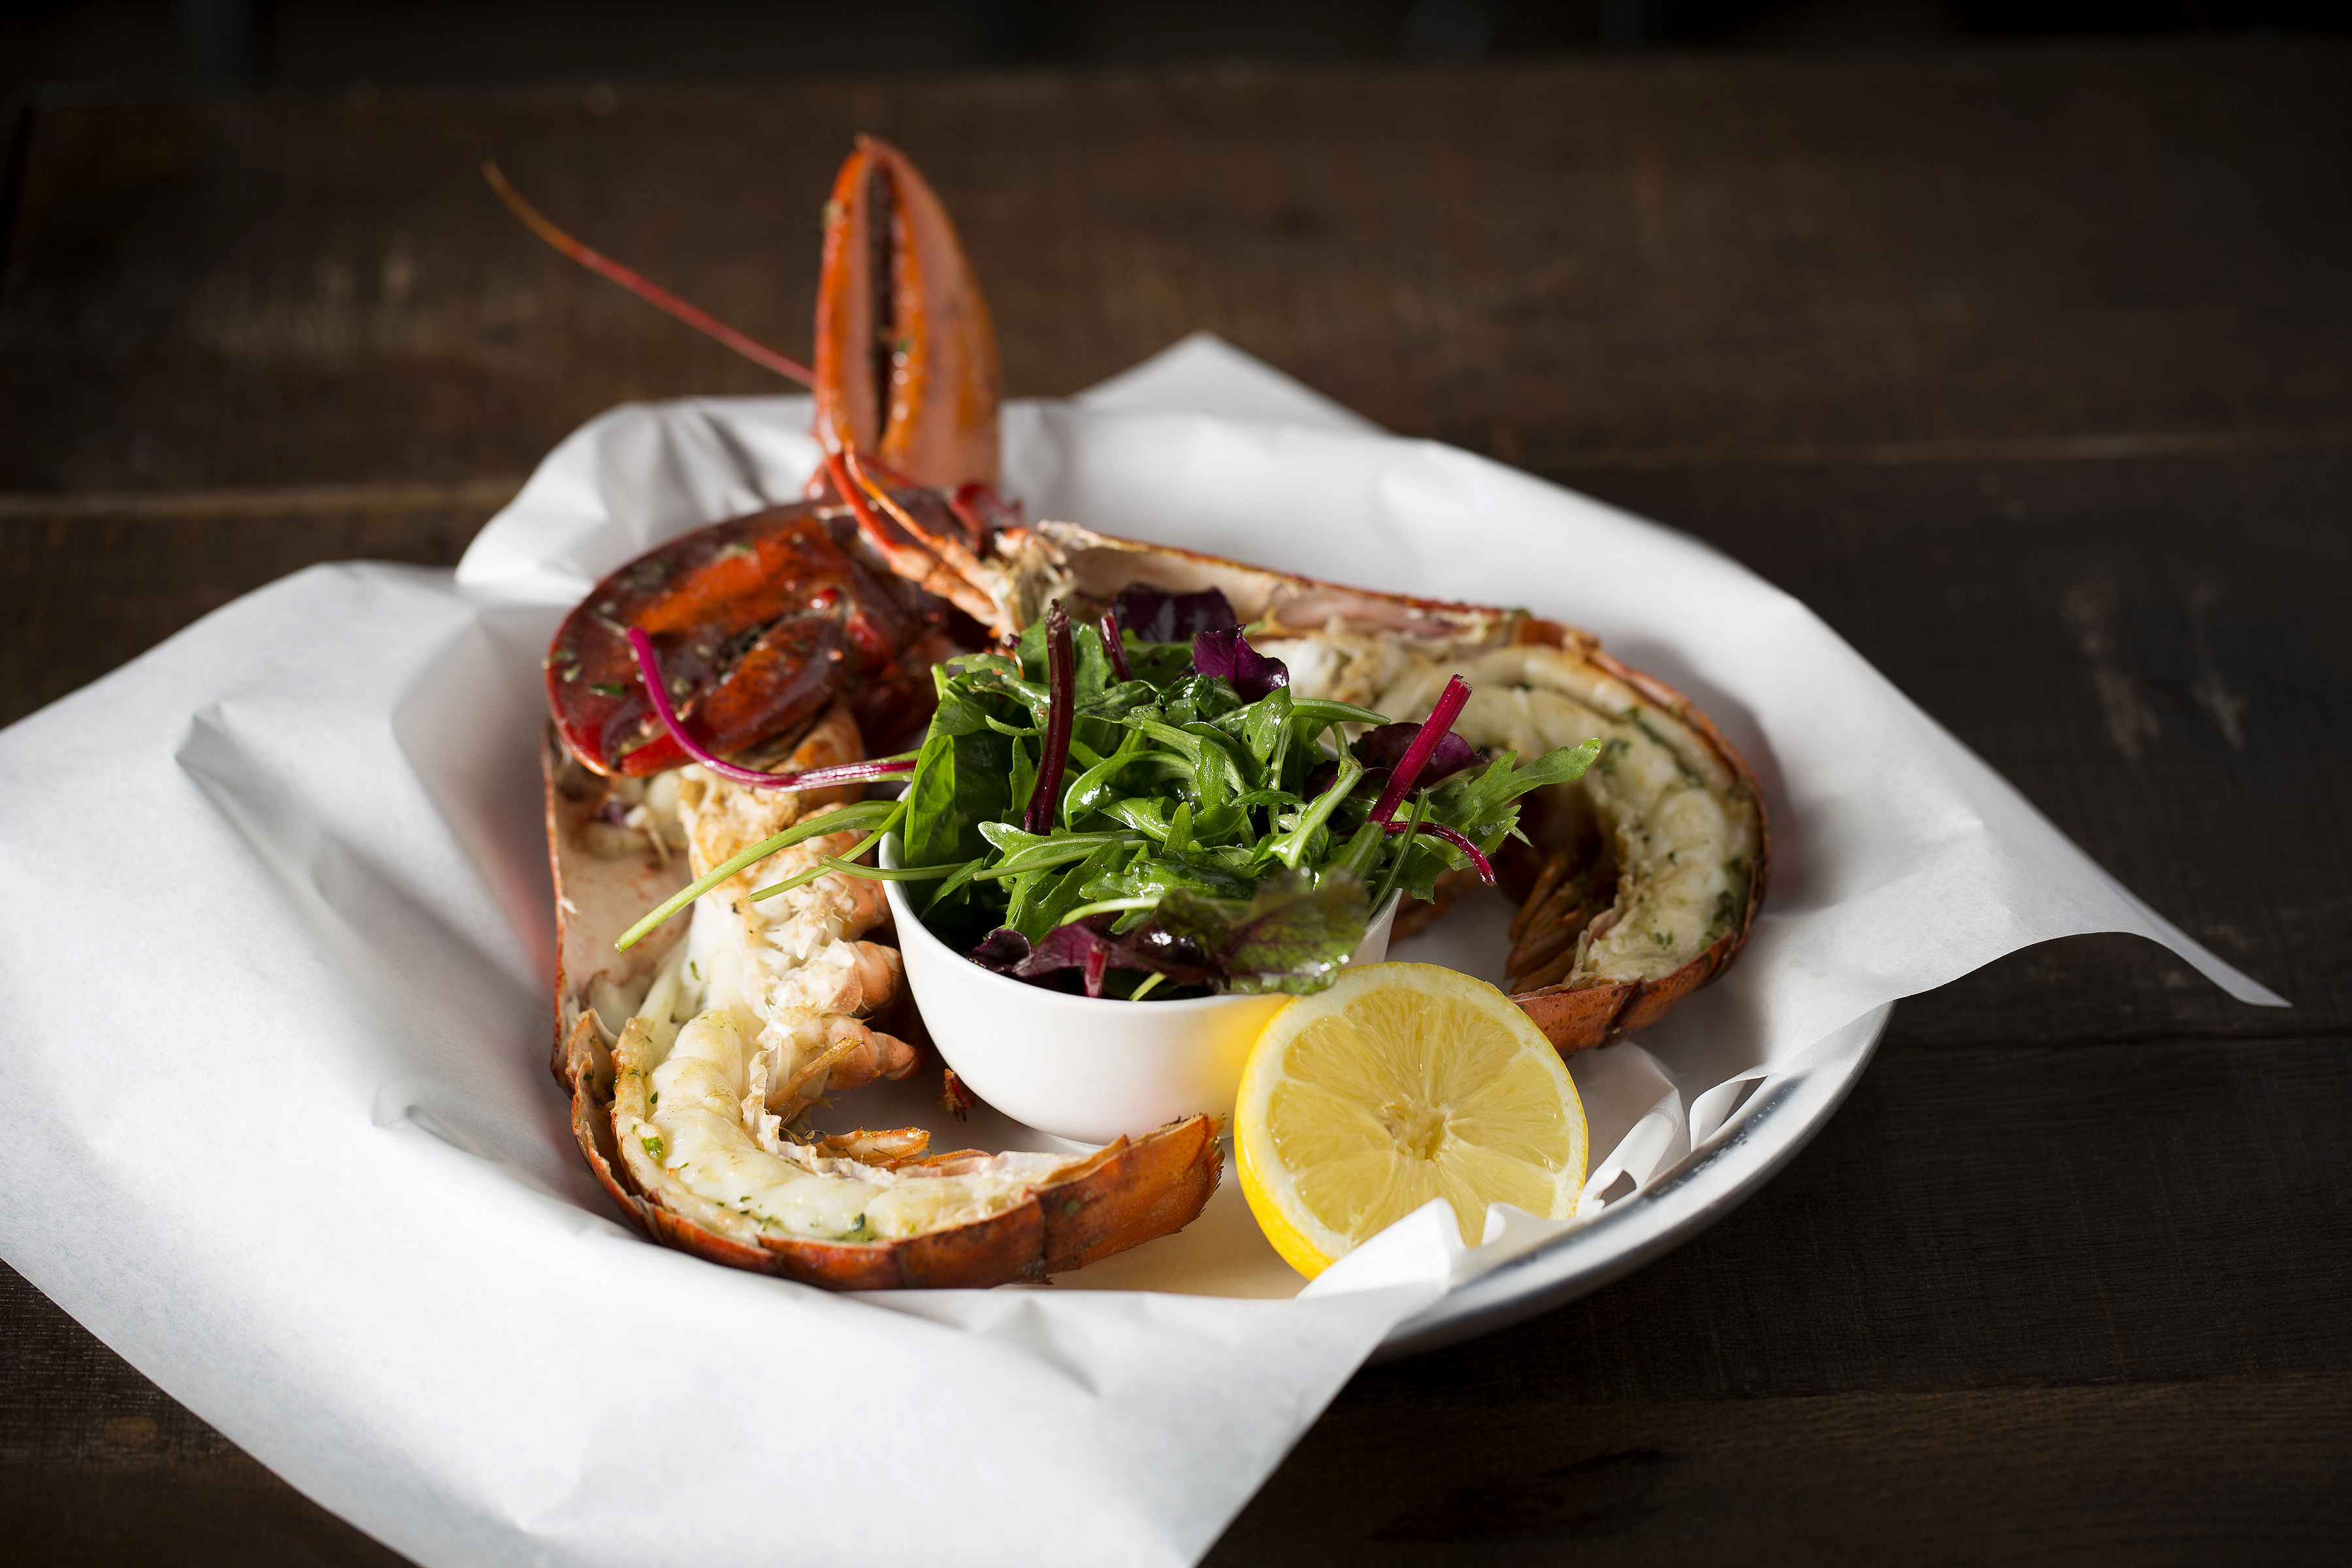 BIG EASY: A Covent Garden Crabshack | It's Rude To Stare